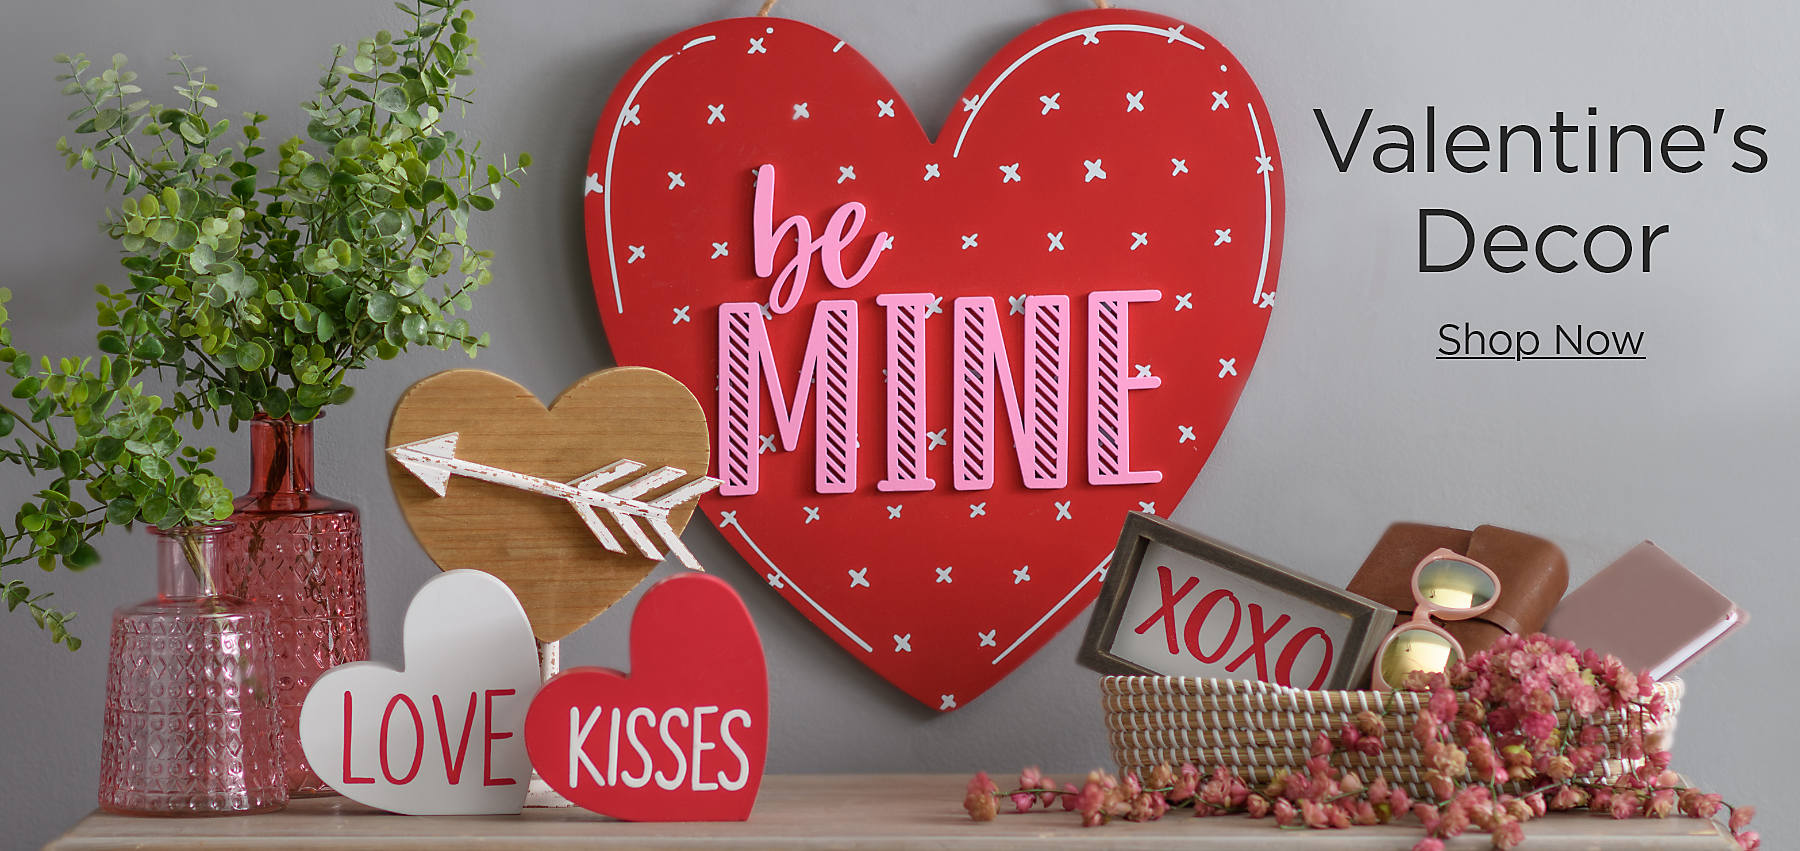 Valentine's Decor Shop Now